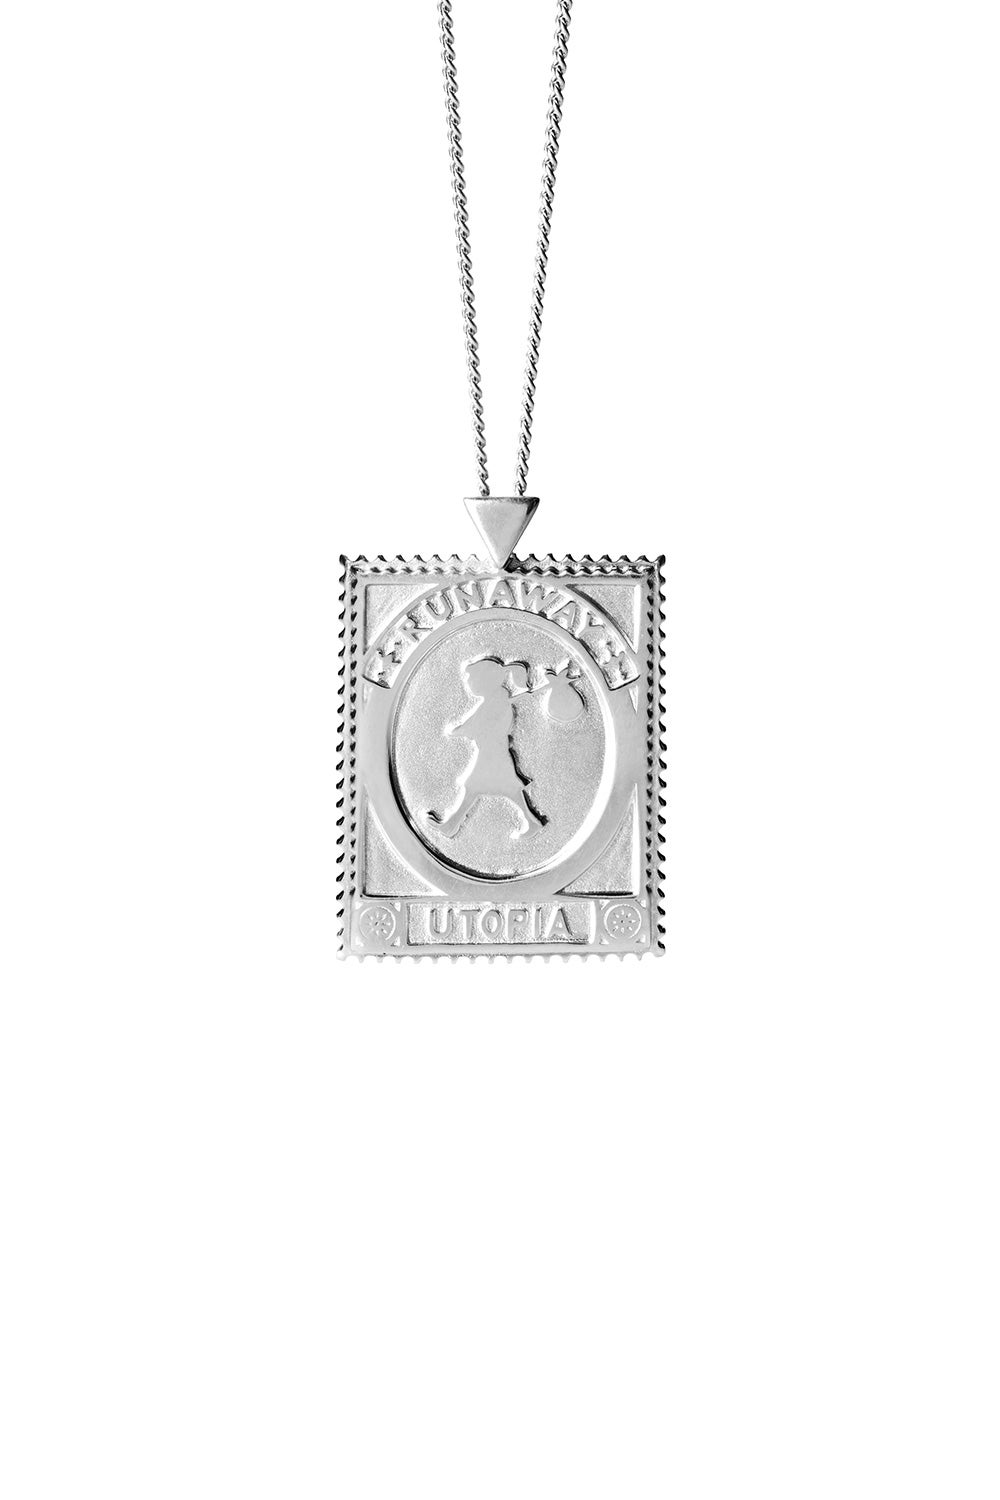 Utopia Stamp Necklace Silver